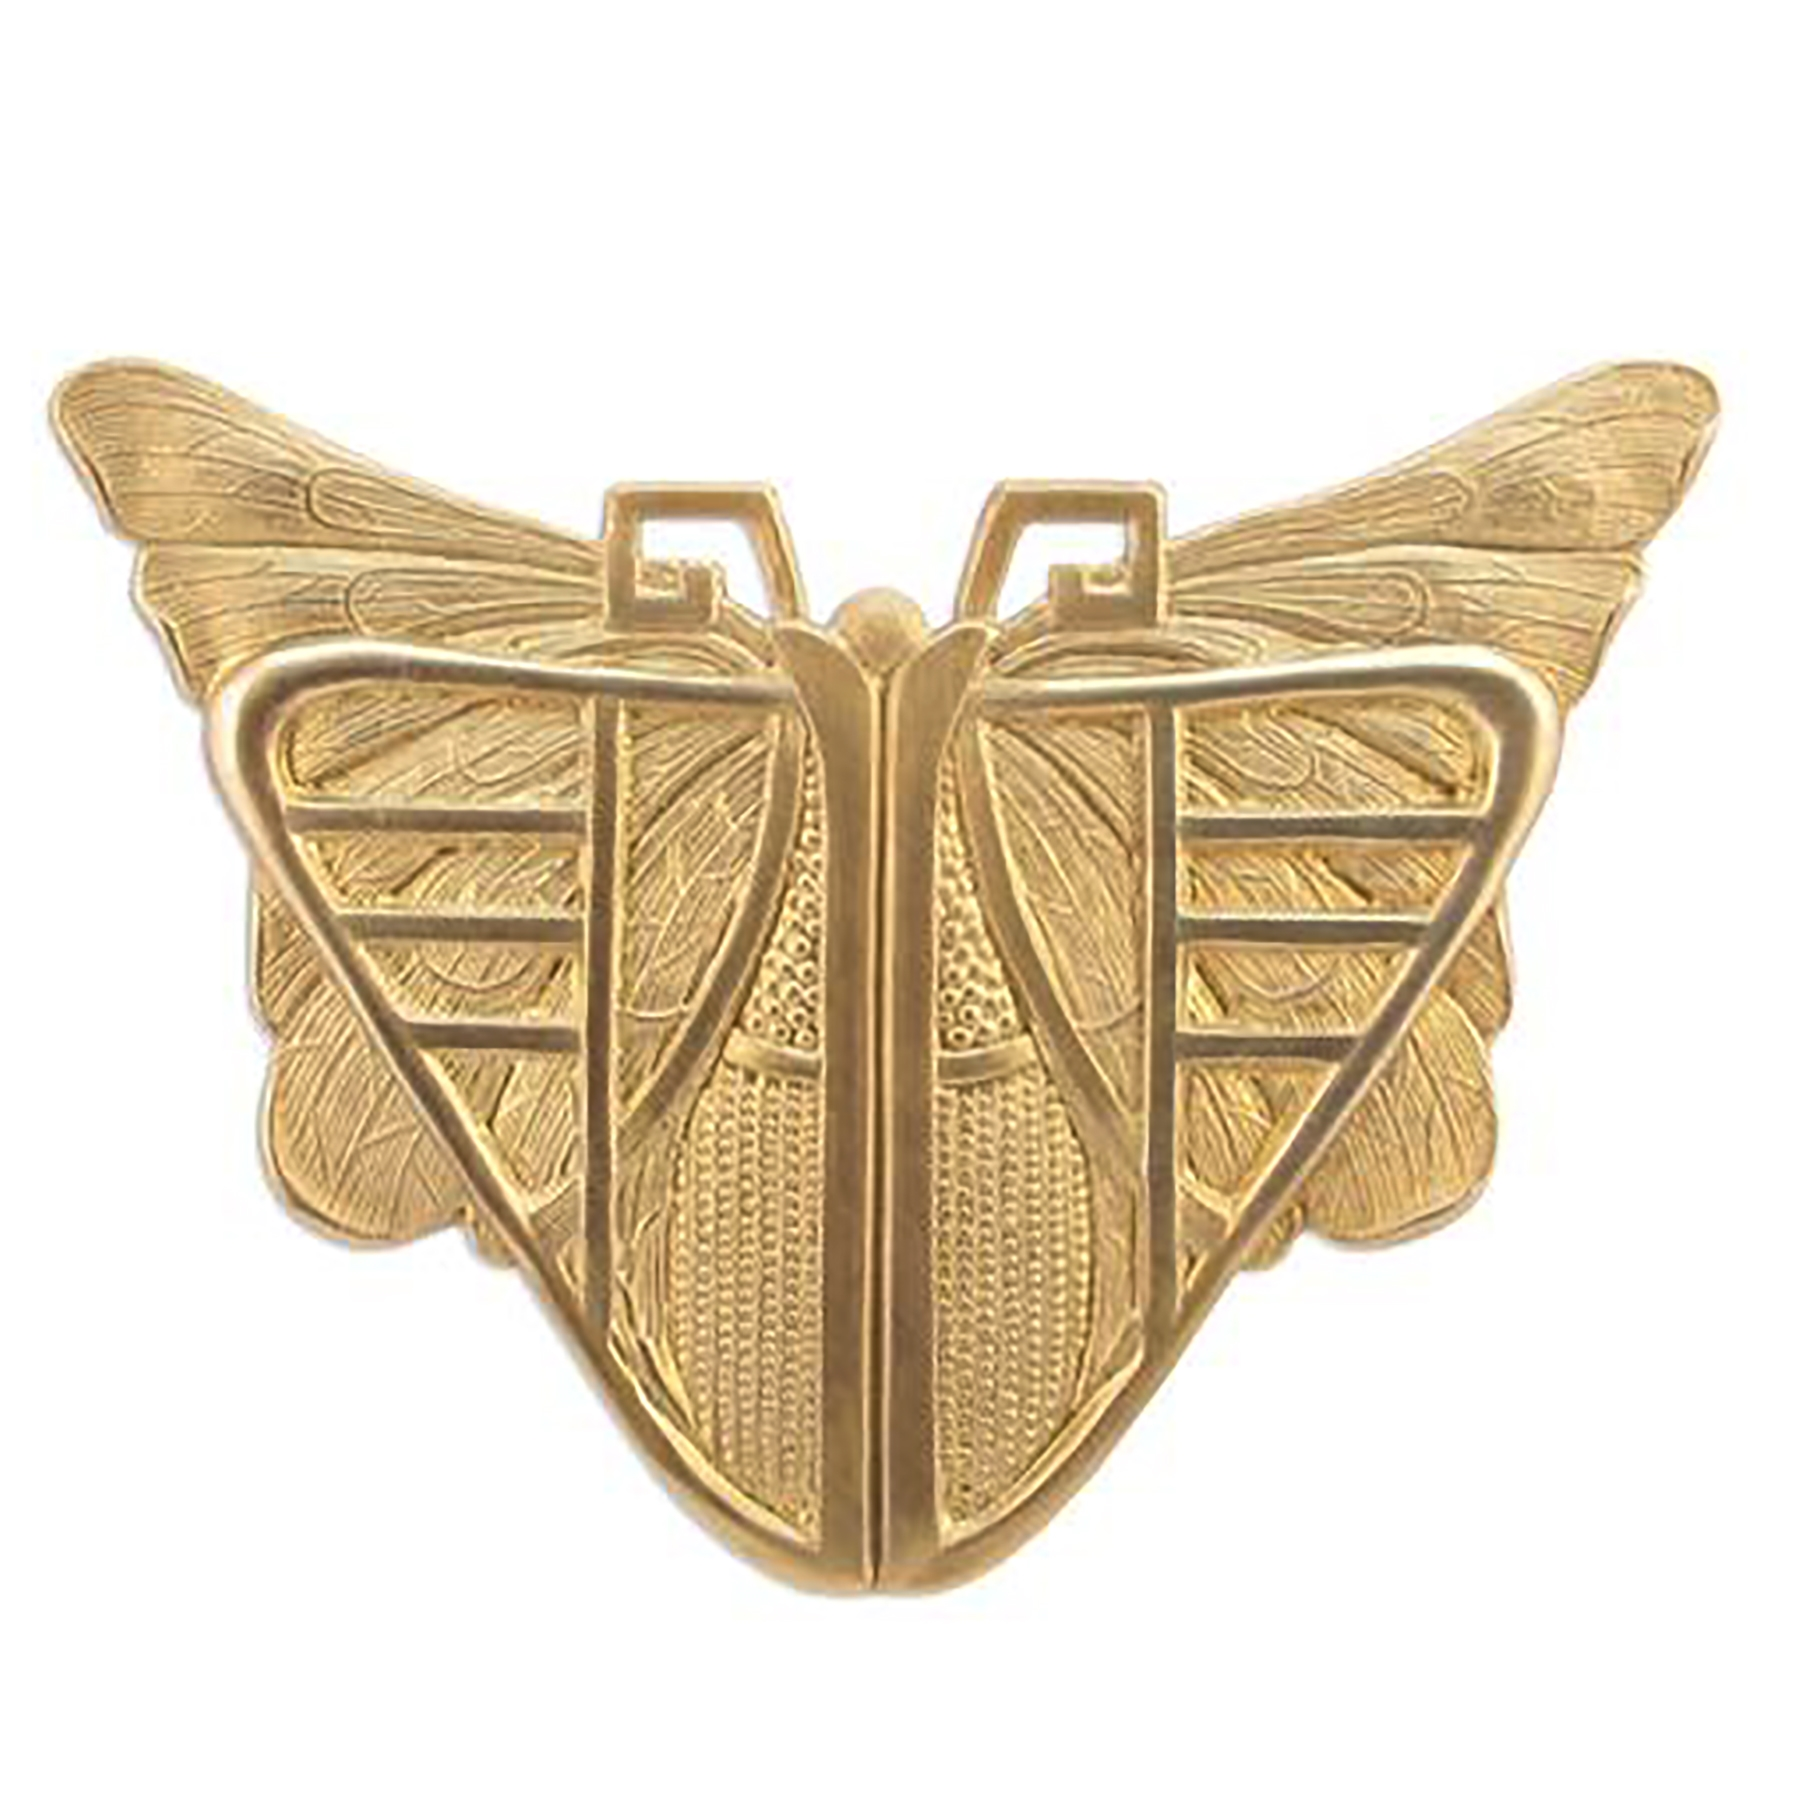 brass stampings, mothra, butterflies, 03739, Art Deco stampings, vintage jewelry supplies, brass jewelry parts, brass findings